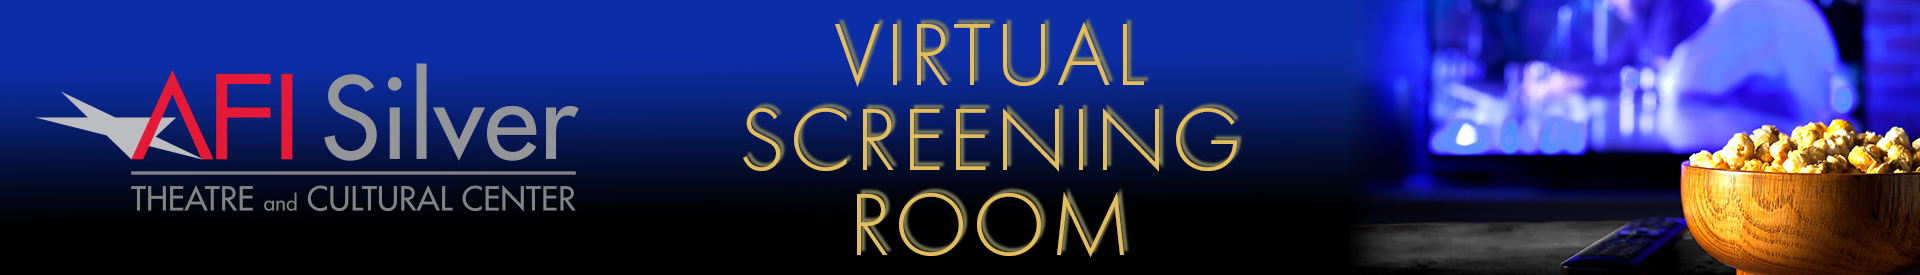 AFI Silver Virtual Screening Room